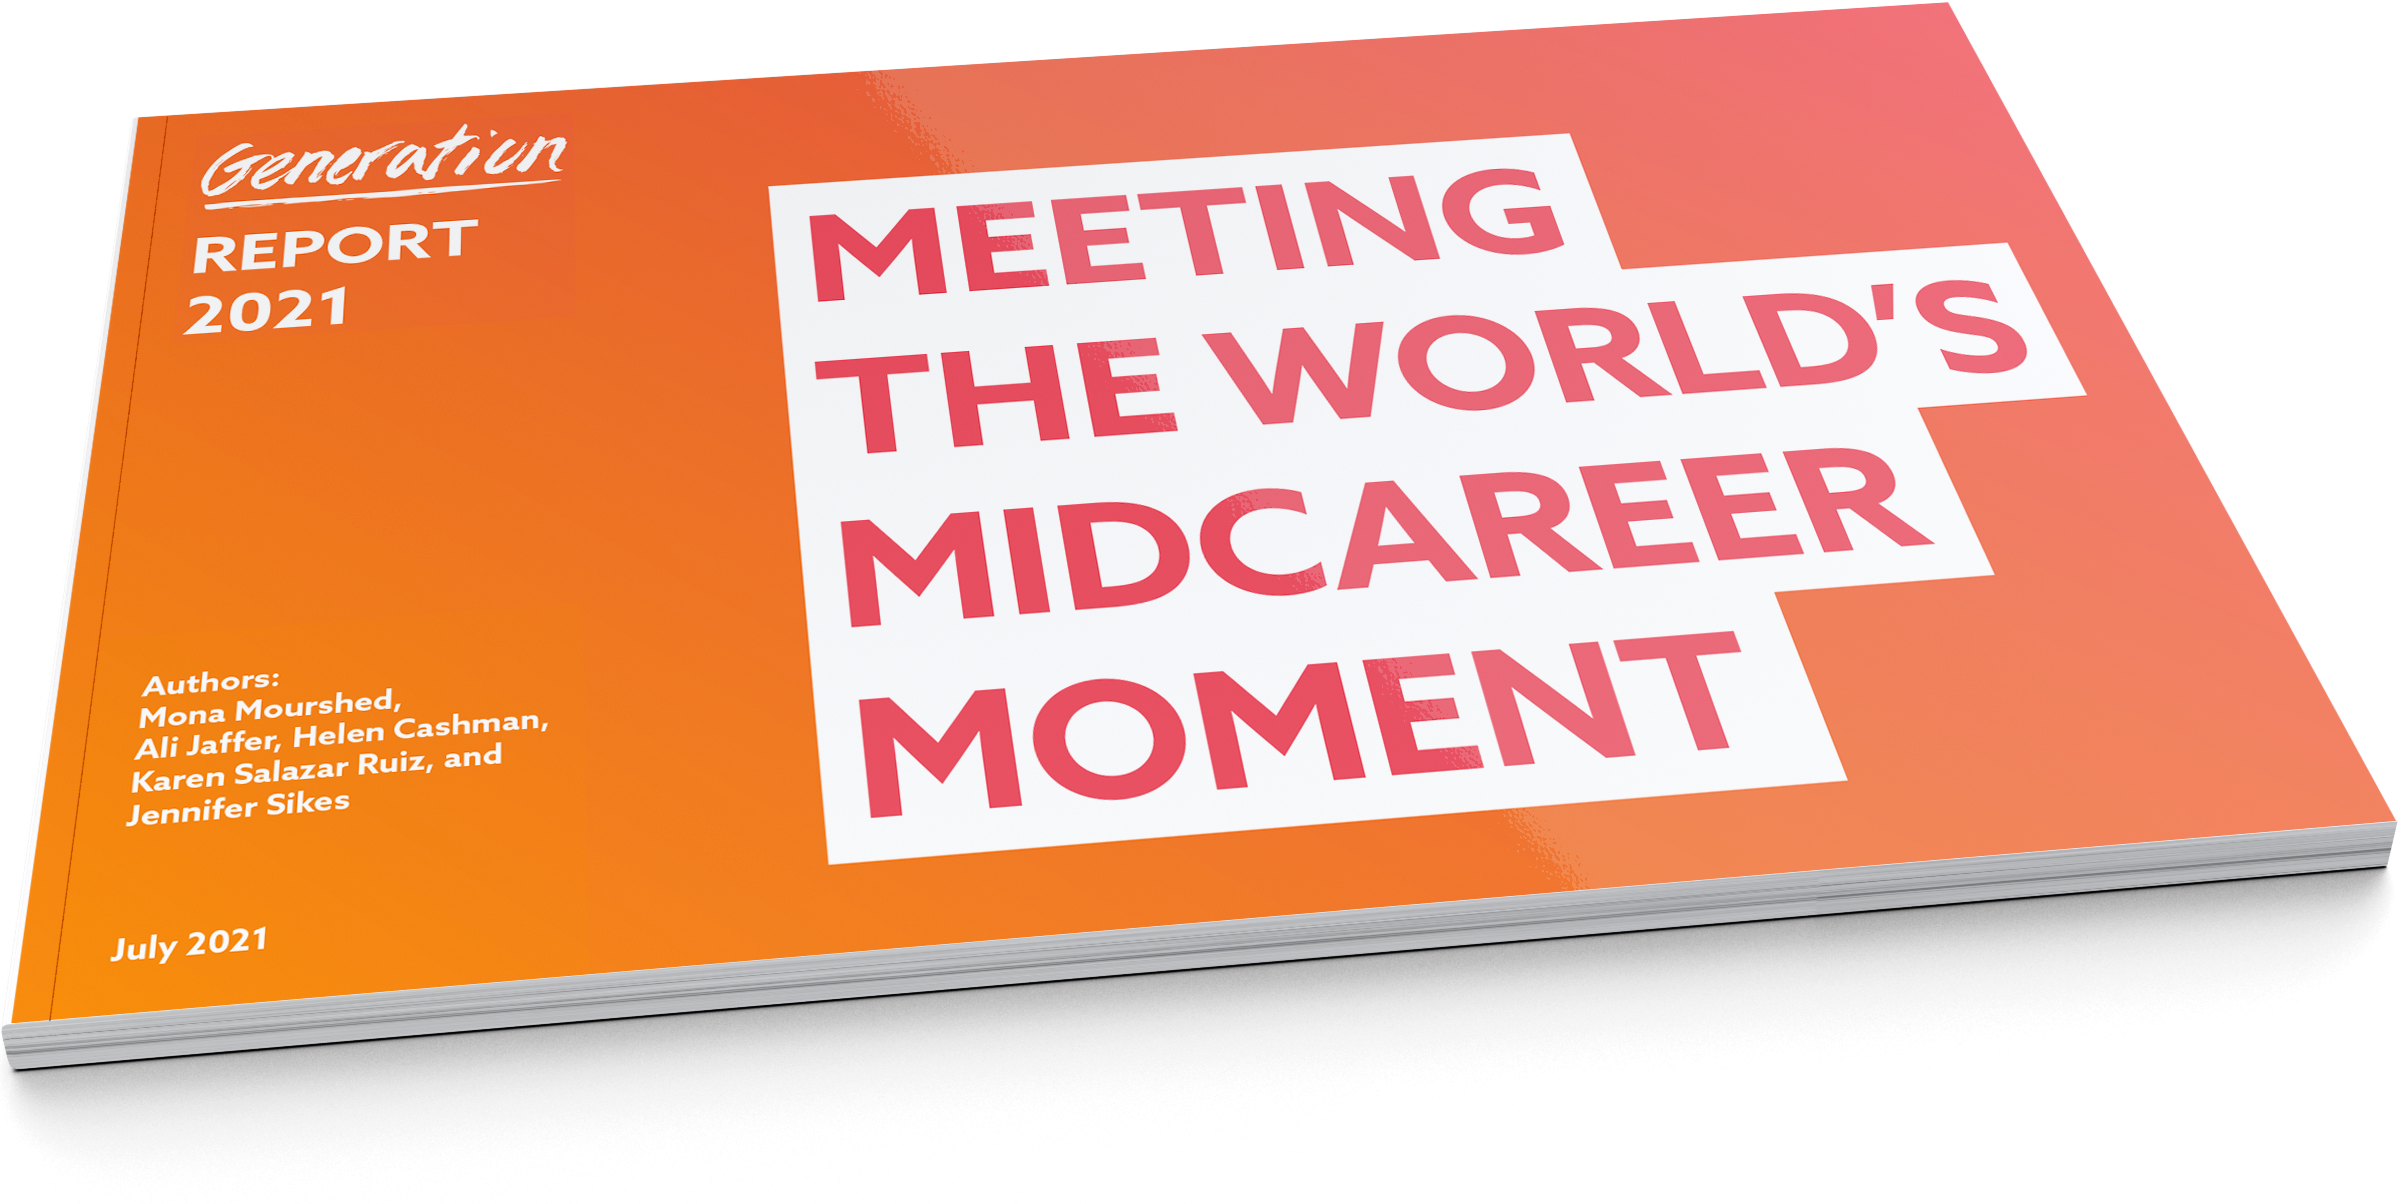 Meeting the World's Midcareer Moment